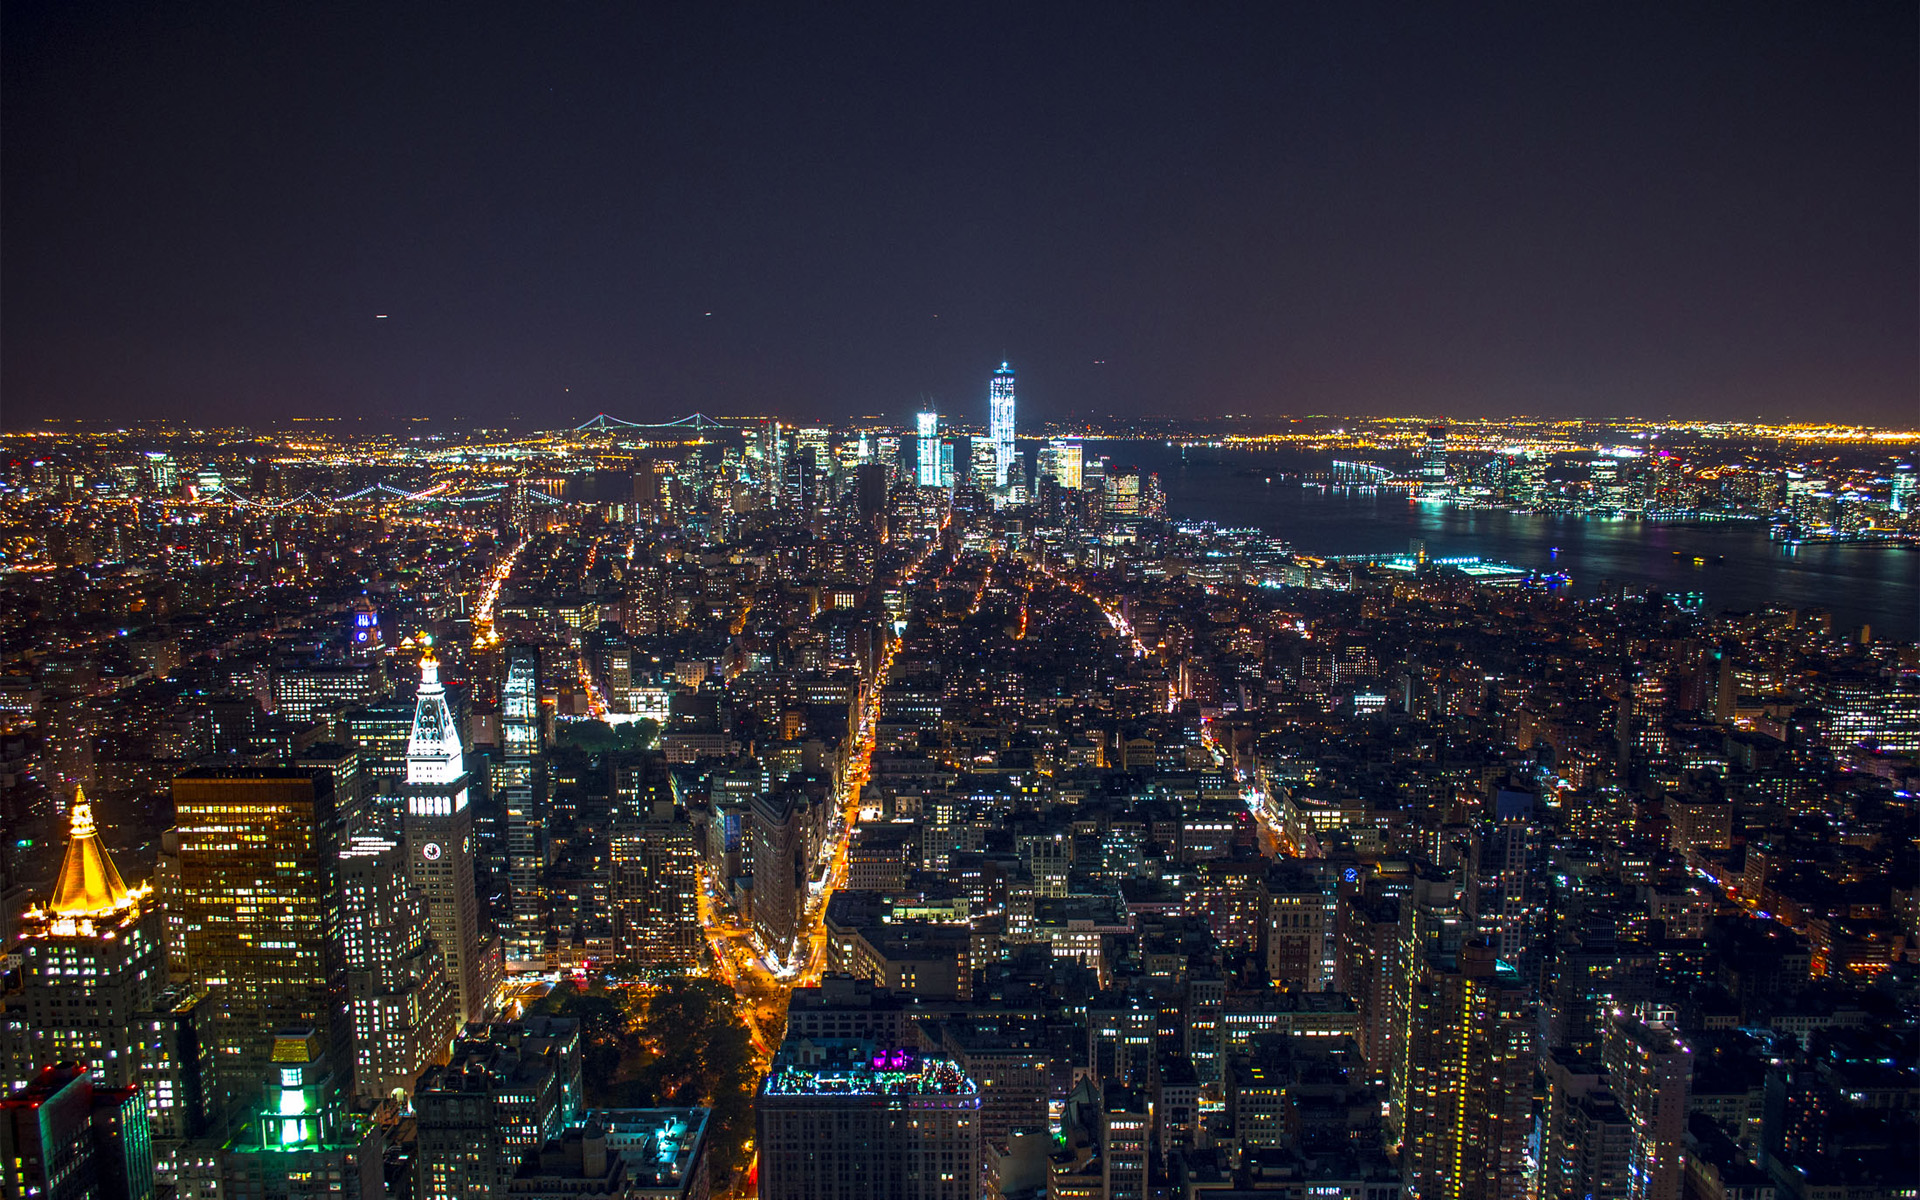 New York Manhattan At Night HD wallpaper Digitalhintnet 1920x1200